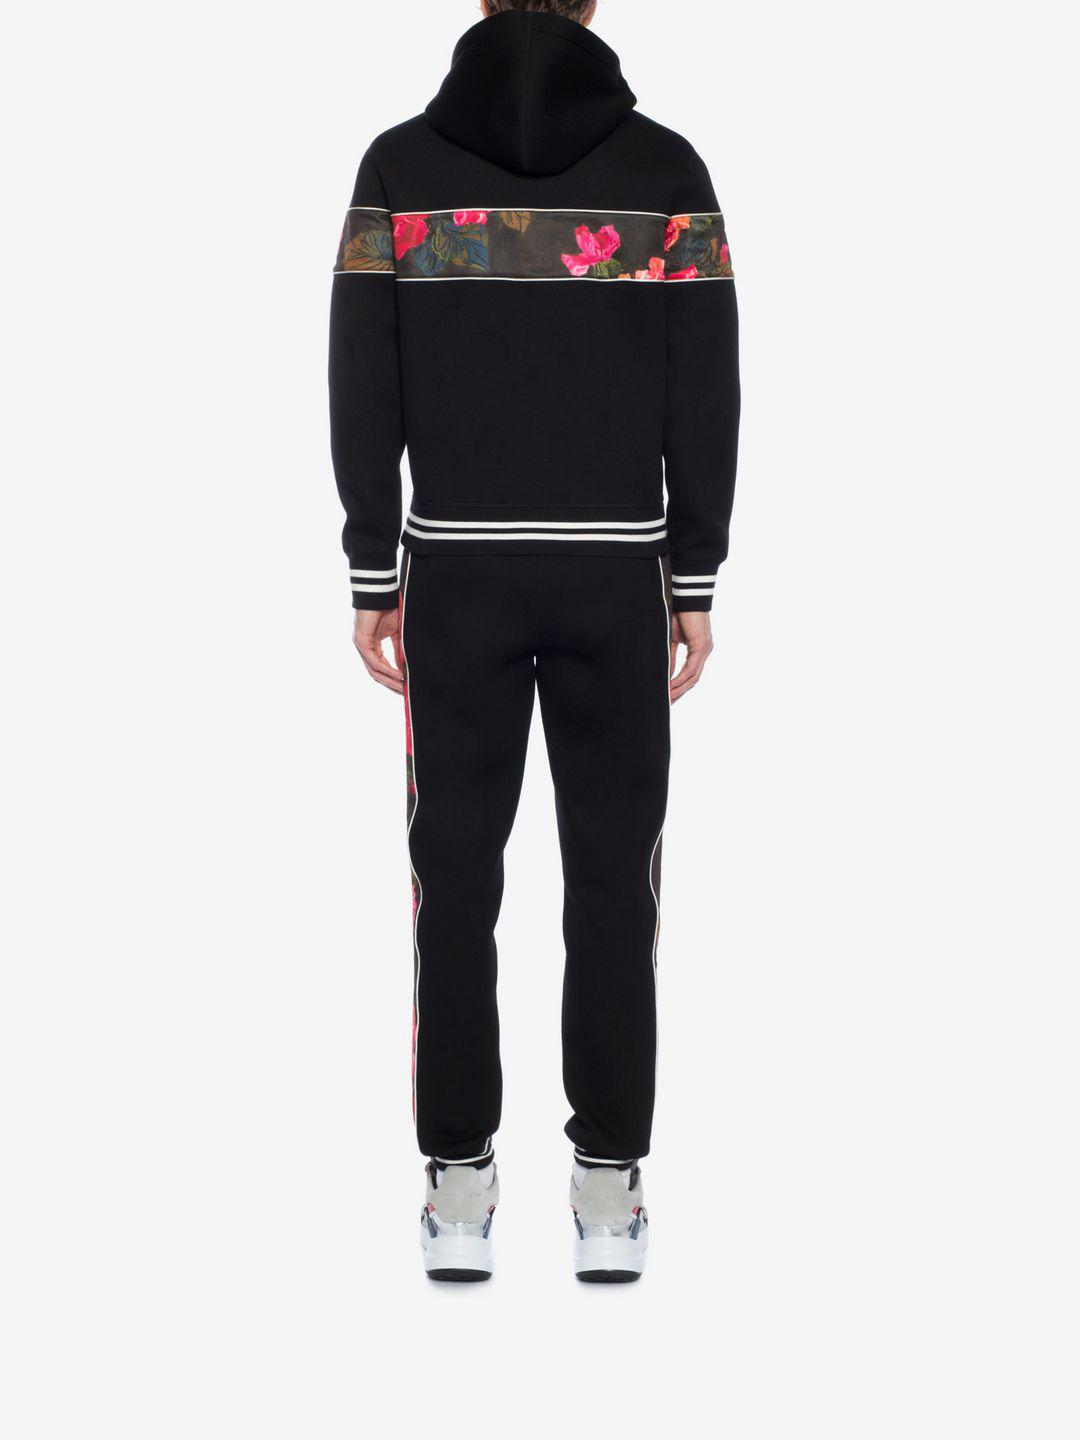 Alexander McQueen Synthetic Painted Rose Sweatpants in Black for Men